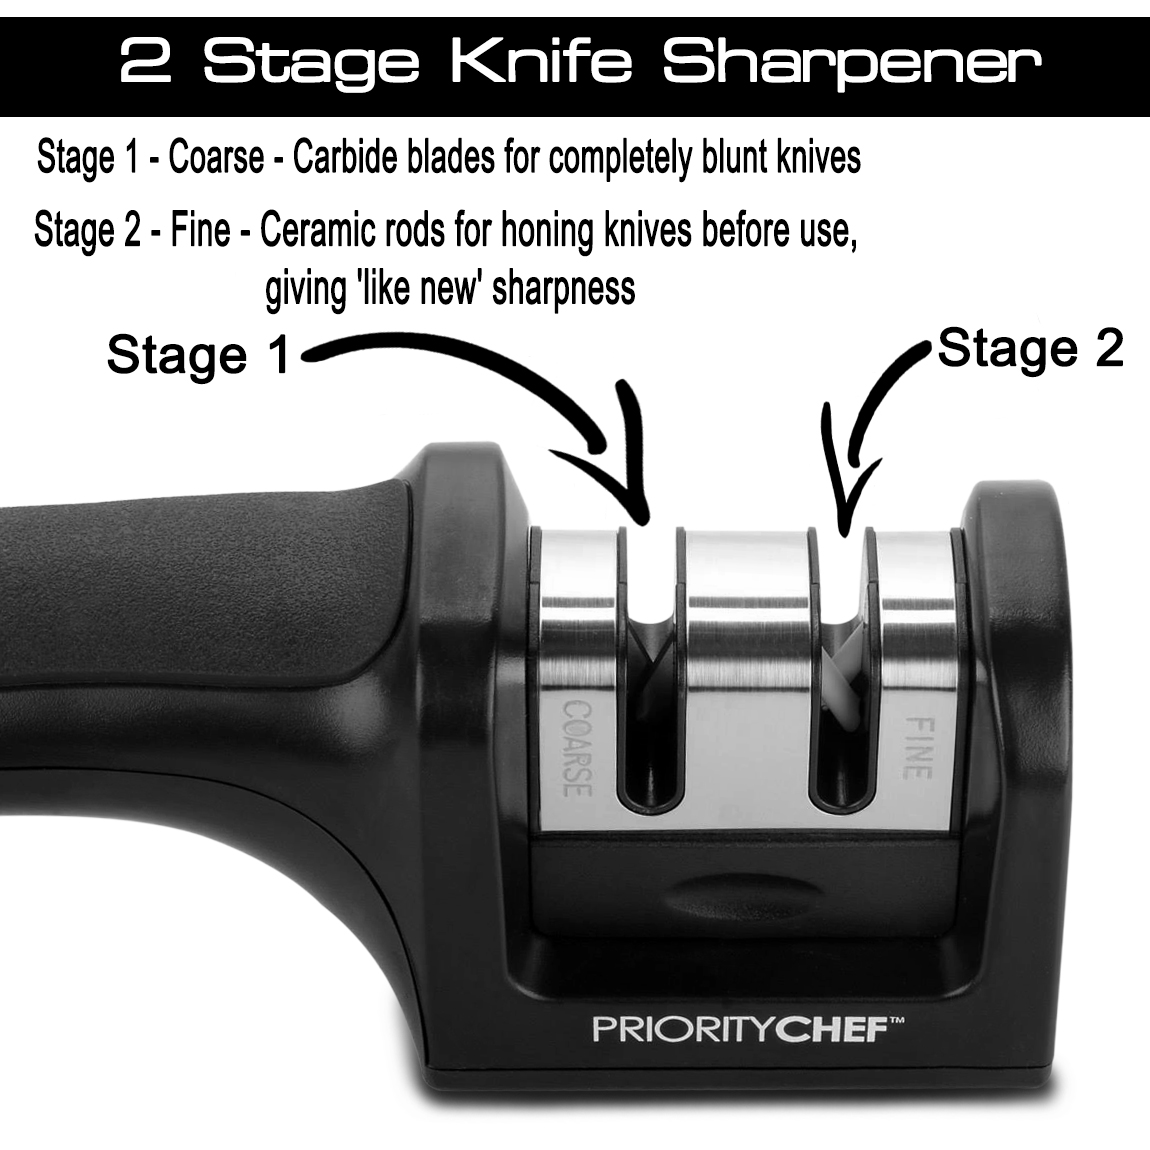 prioritychef knife sharpener review living a sunshine life. Black Bedroom Furniture Sets. Home Design Ideas